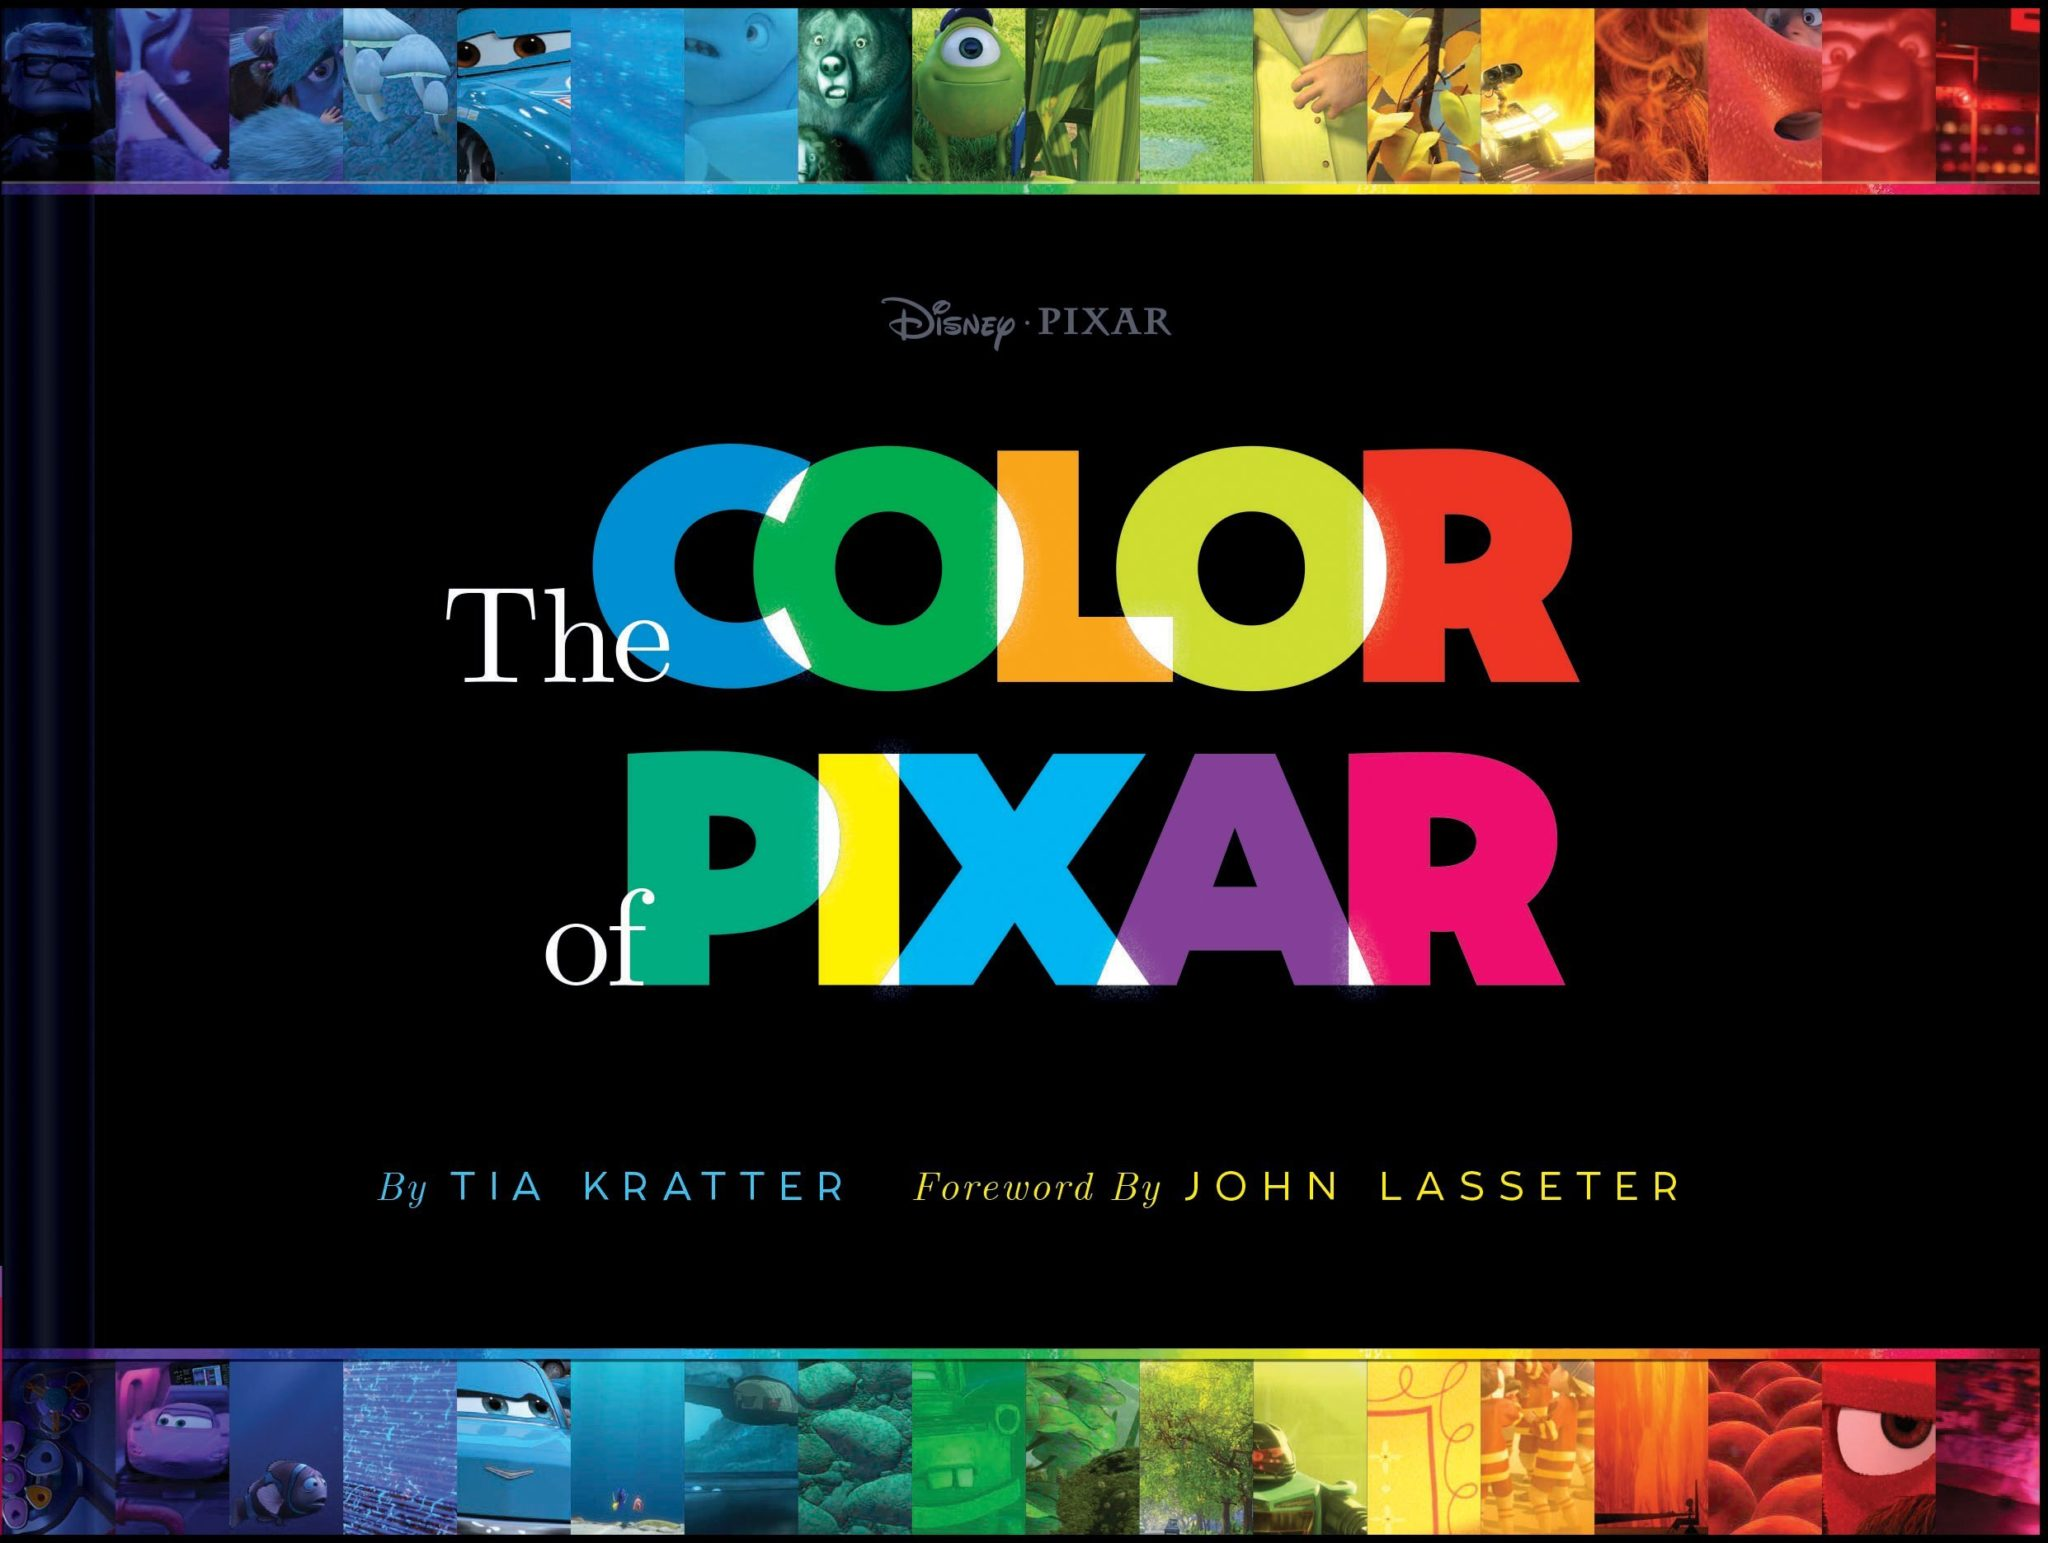 [BOOK REVIEW] The Color of Pixar | Rotoscopers